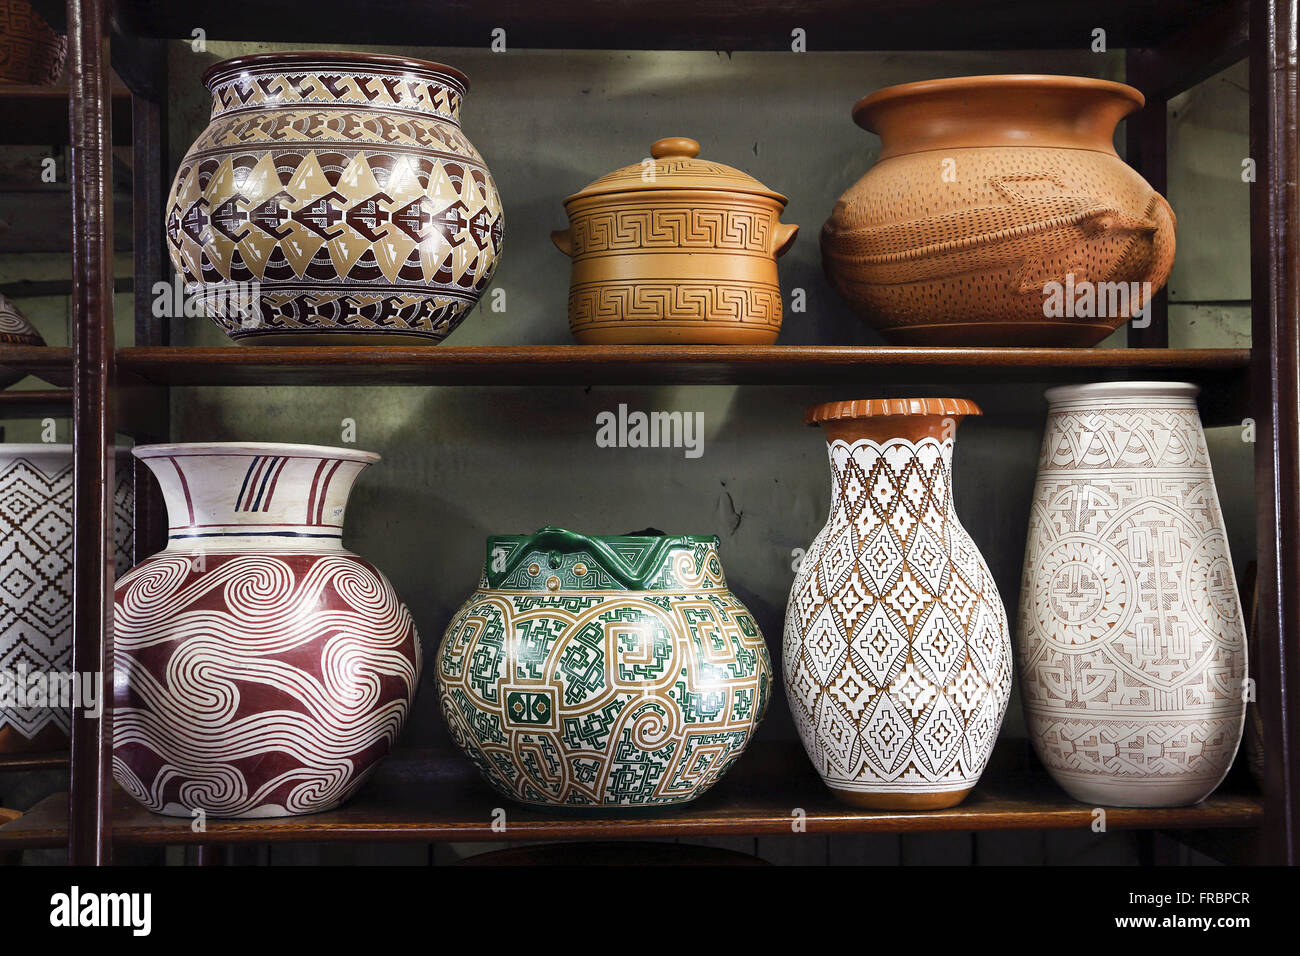 Ceramic vases with marajoaras drawings produced in the workshop of the Master Anísio - Stock Image